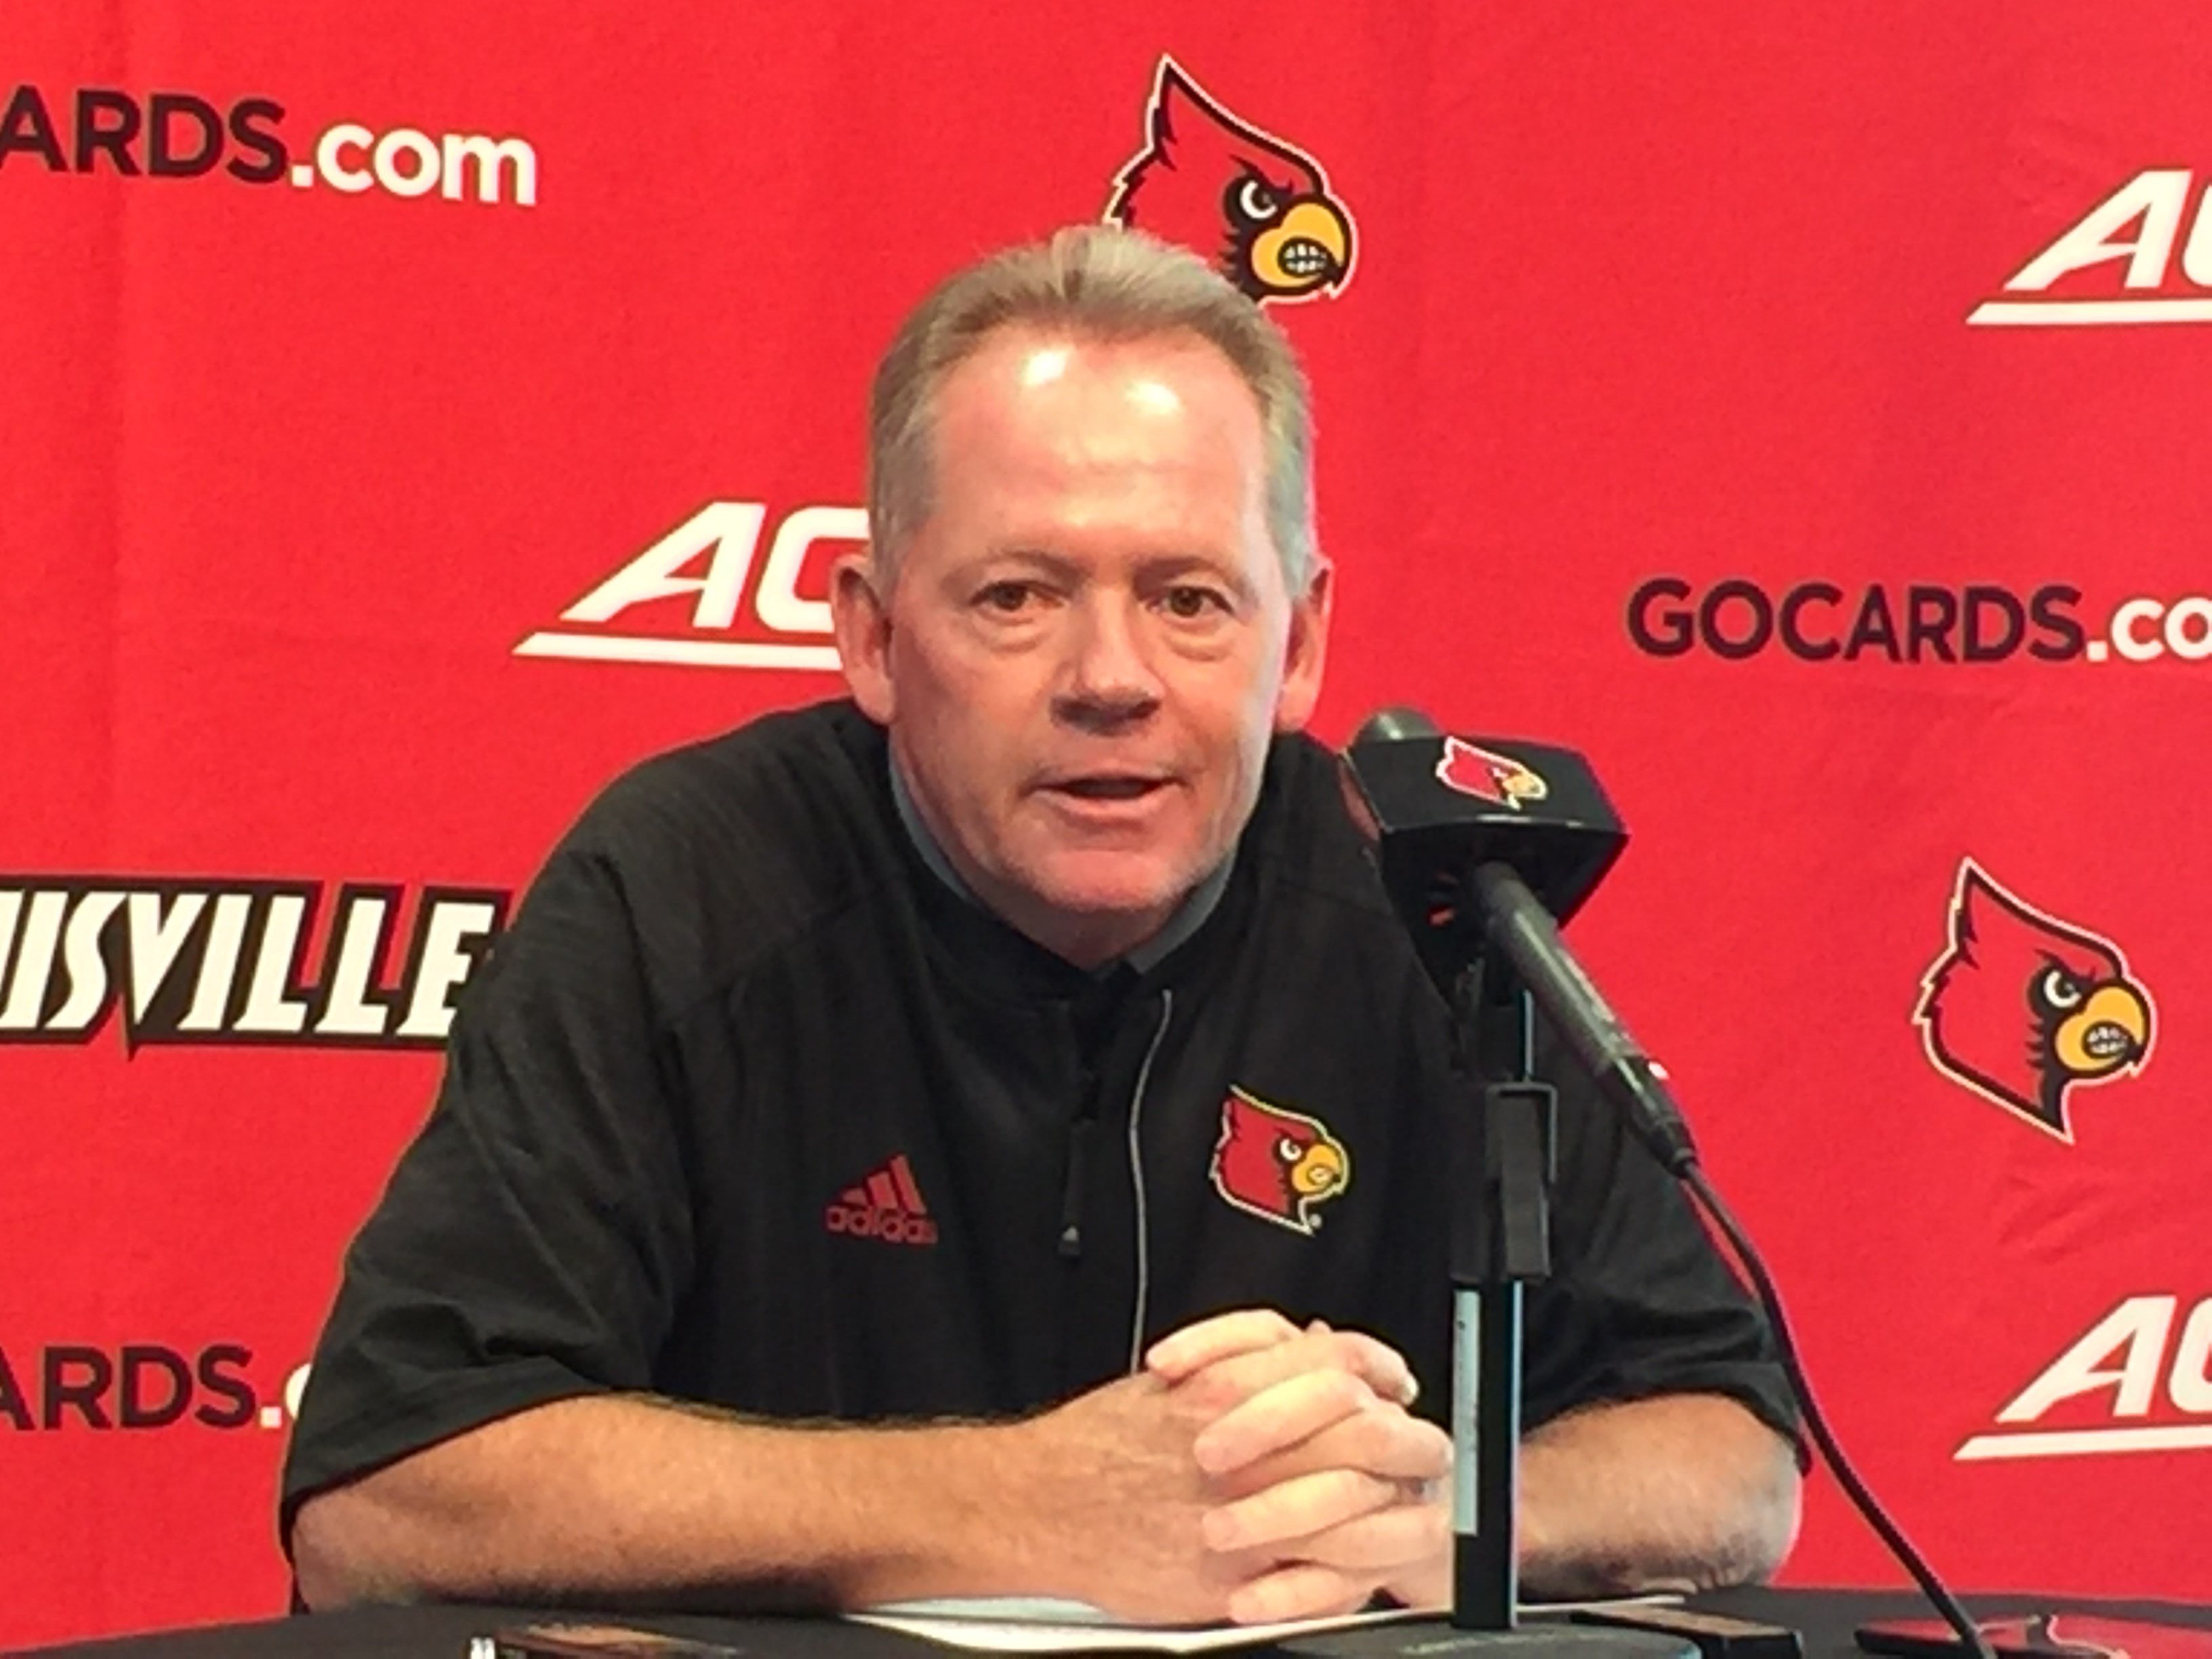 Bobby Petrino's point that margin of victory matters was debated on ESPN Tuesday night.